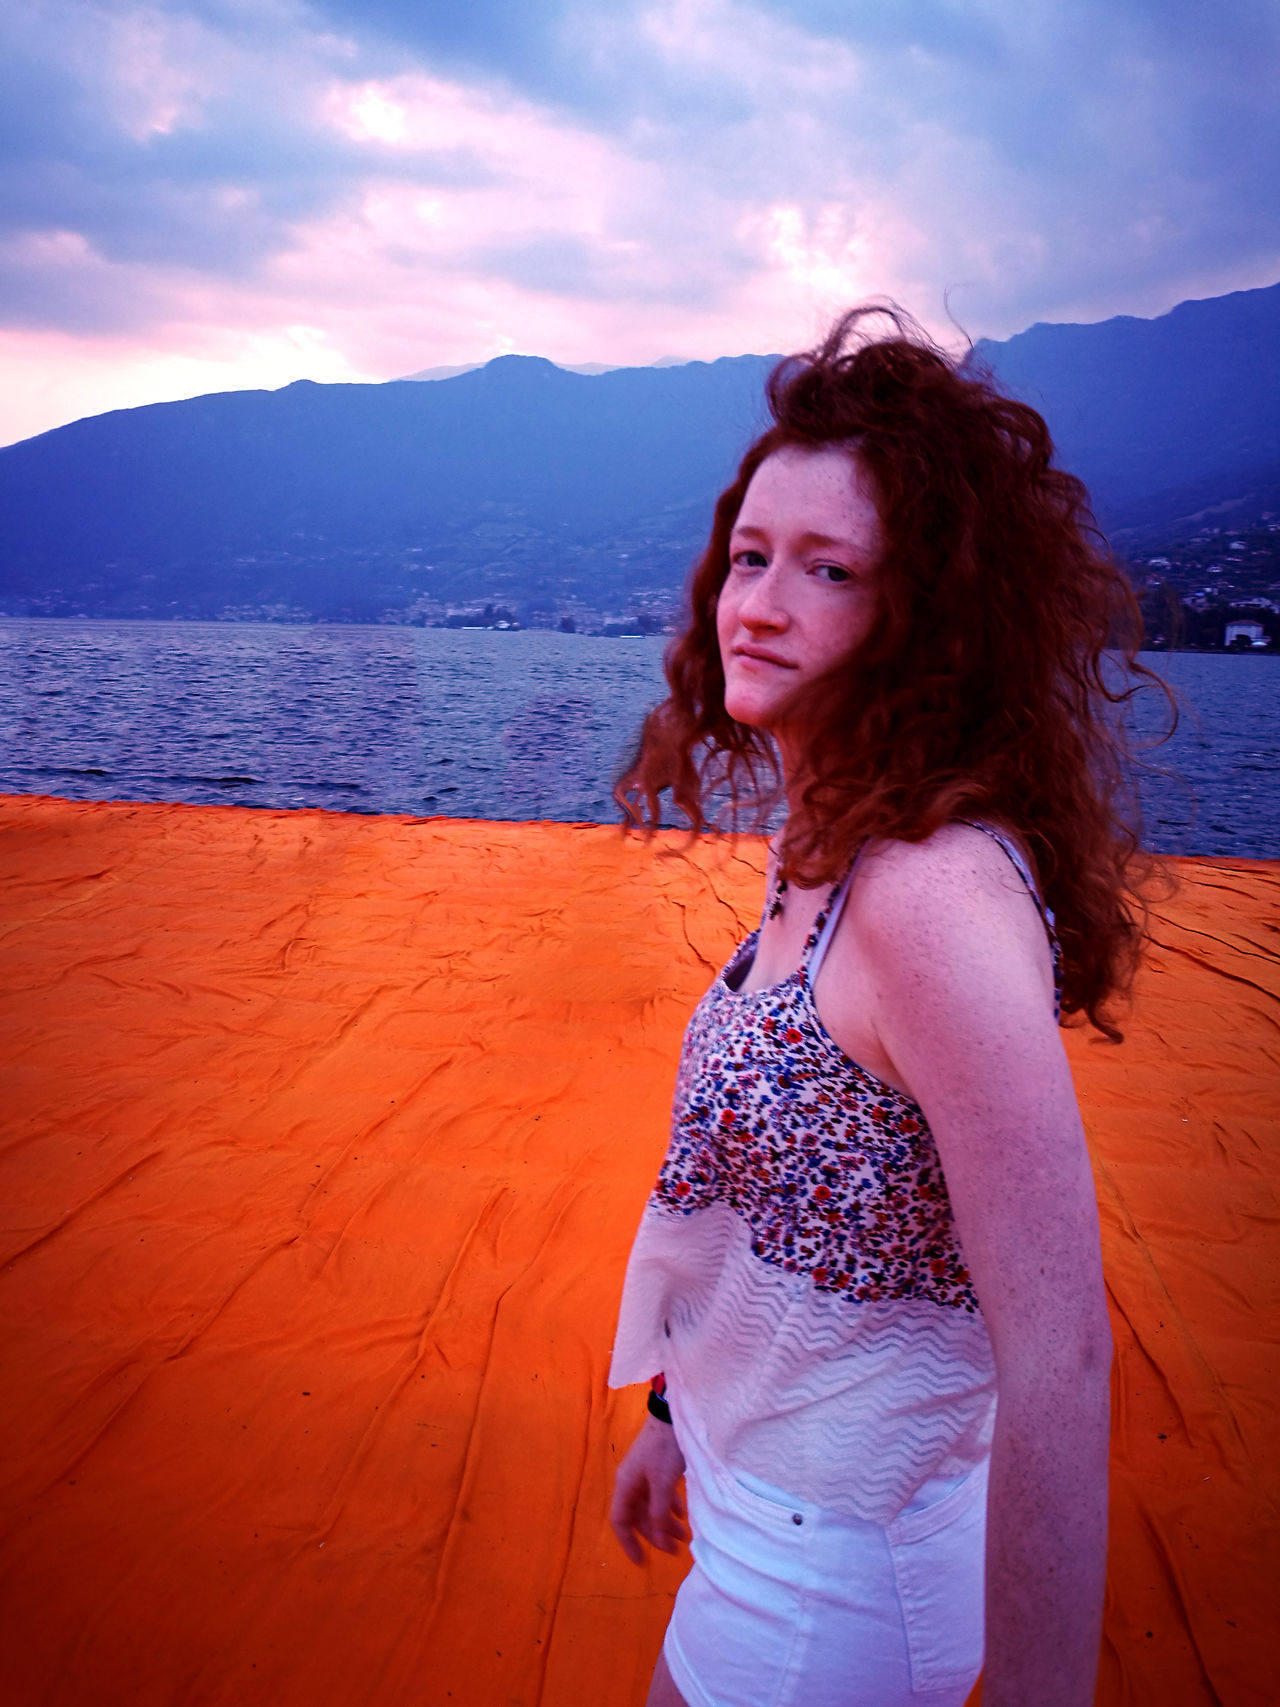 Blue Christo Floating Piers Ginger Looking At Camera Nature One Person One Woman Only Orange Outdoors Portrait Red Redhead Skinny Sunset Water